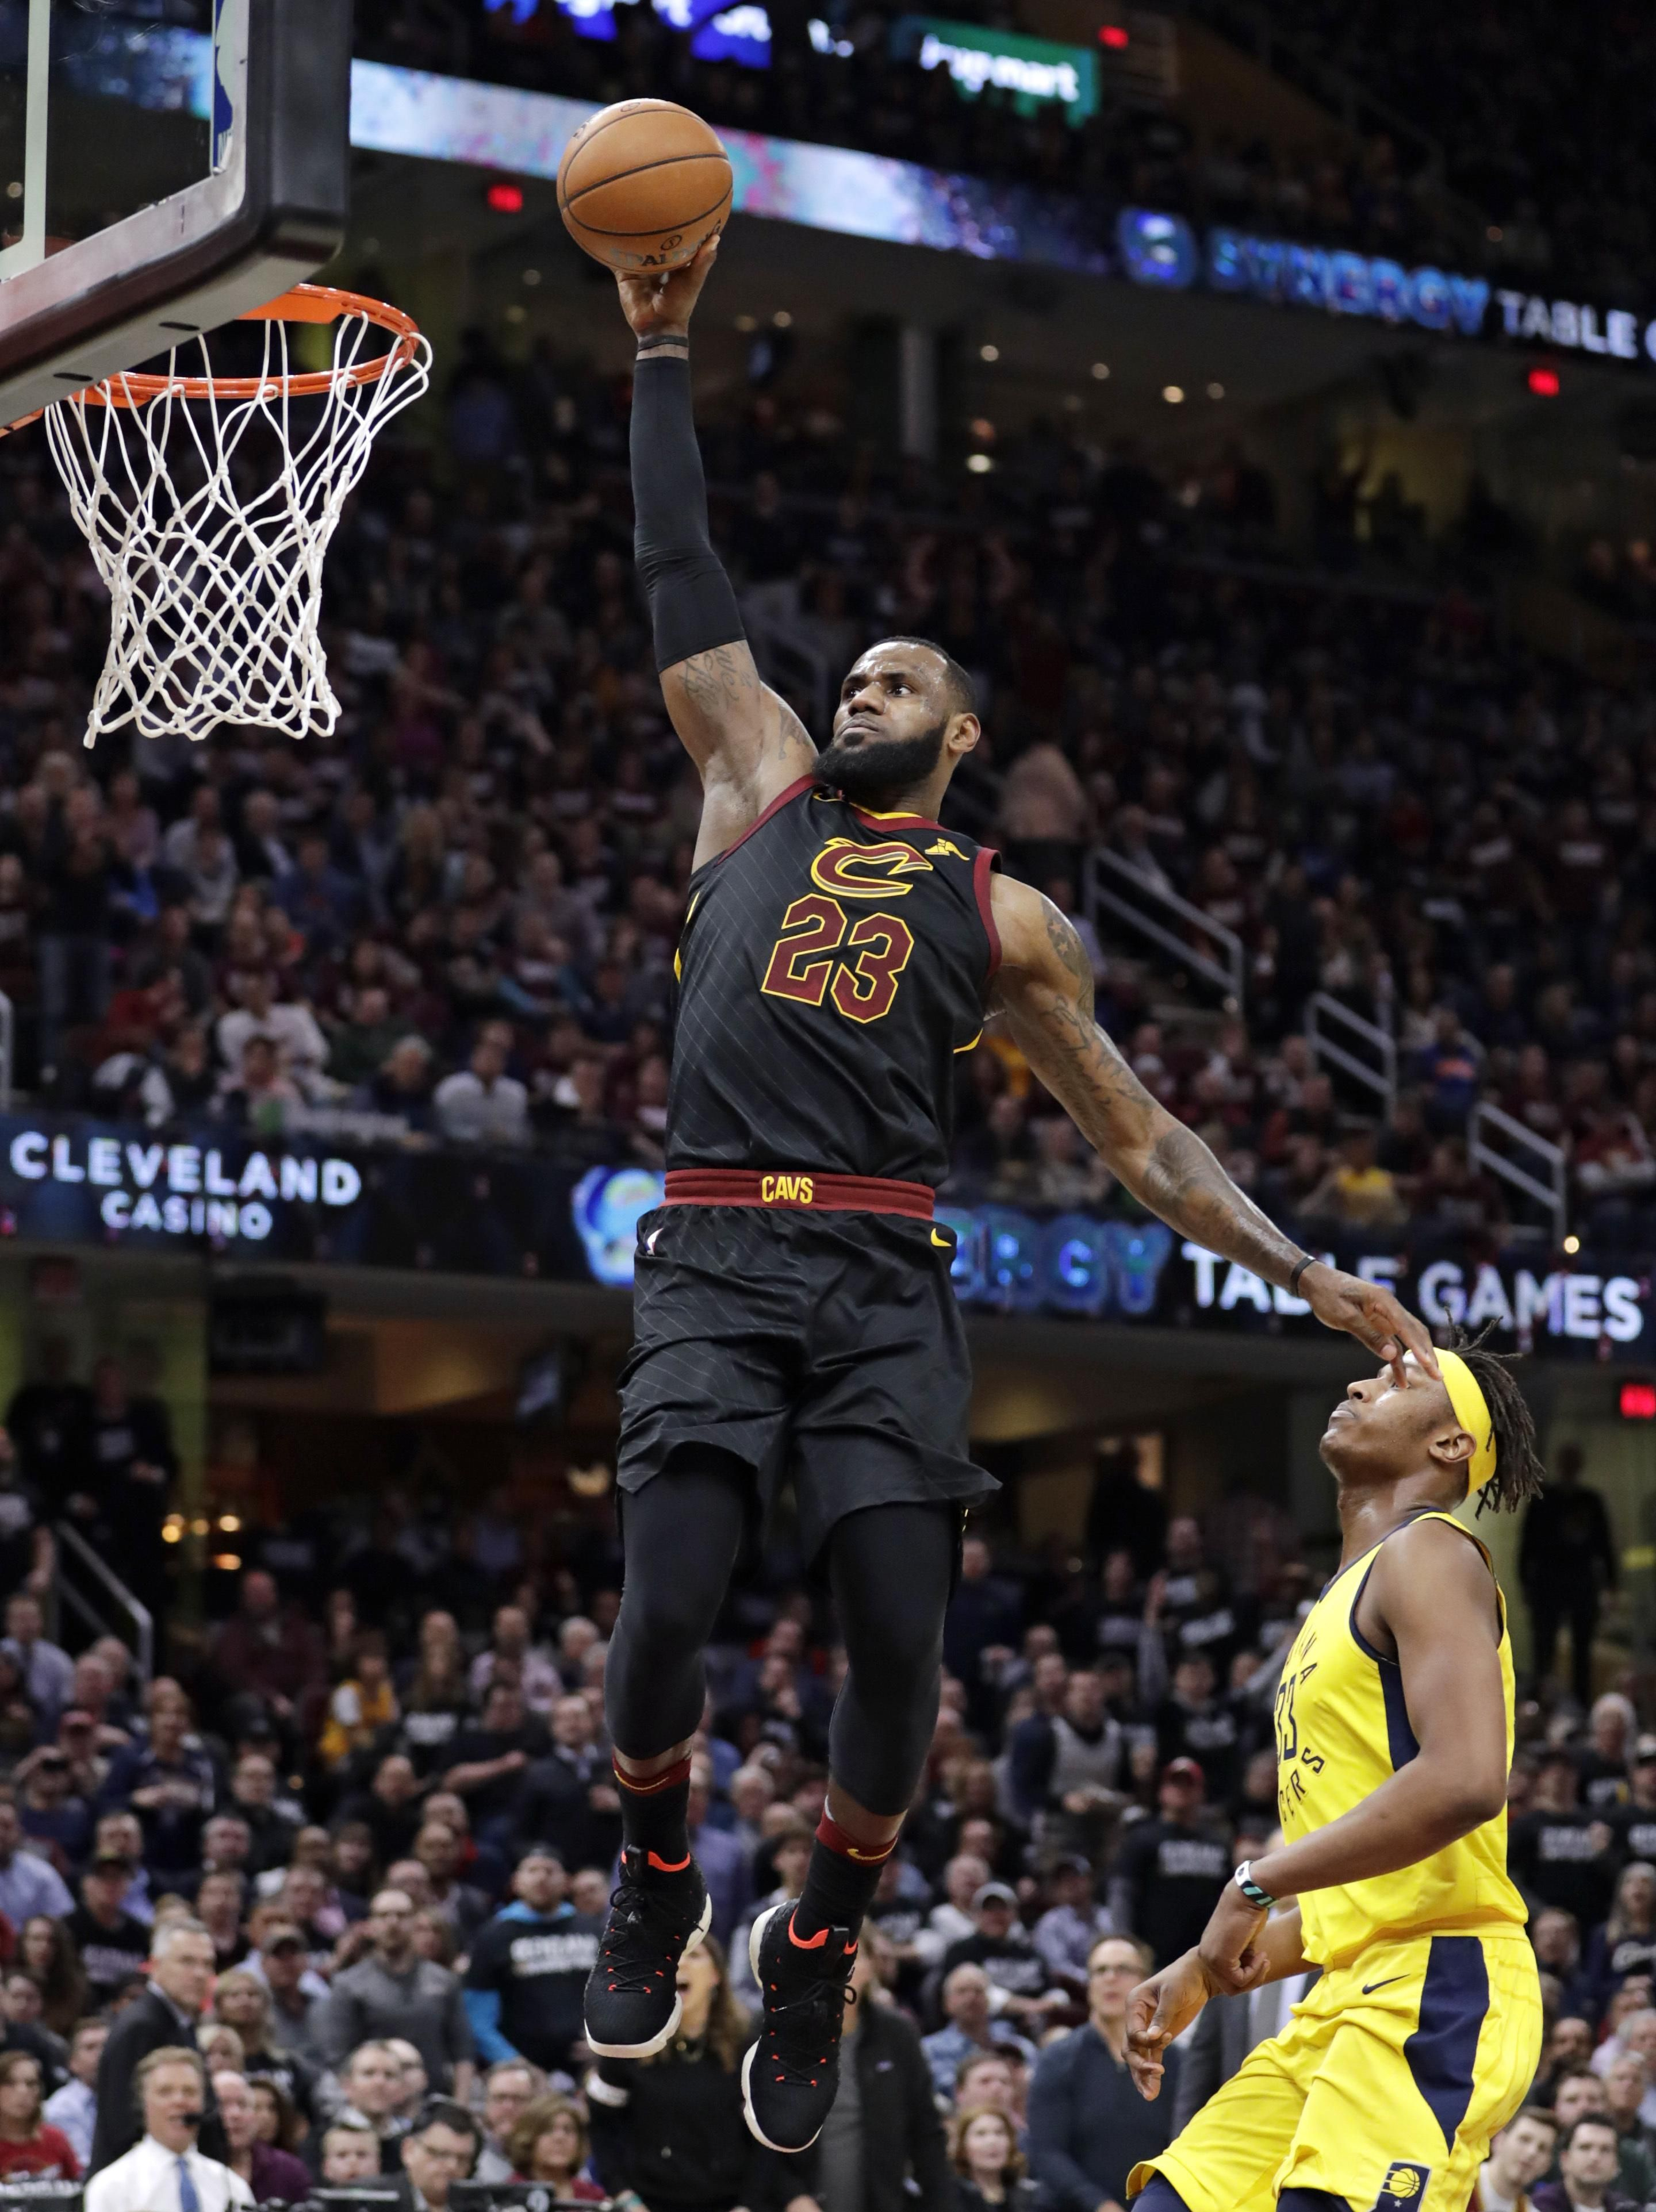 James also added 12 rebounds as Cavaliers beat Pacers 100